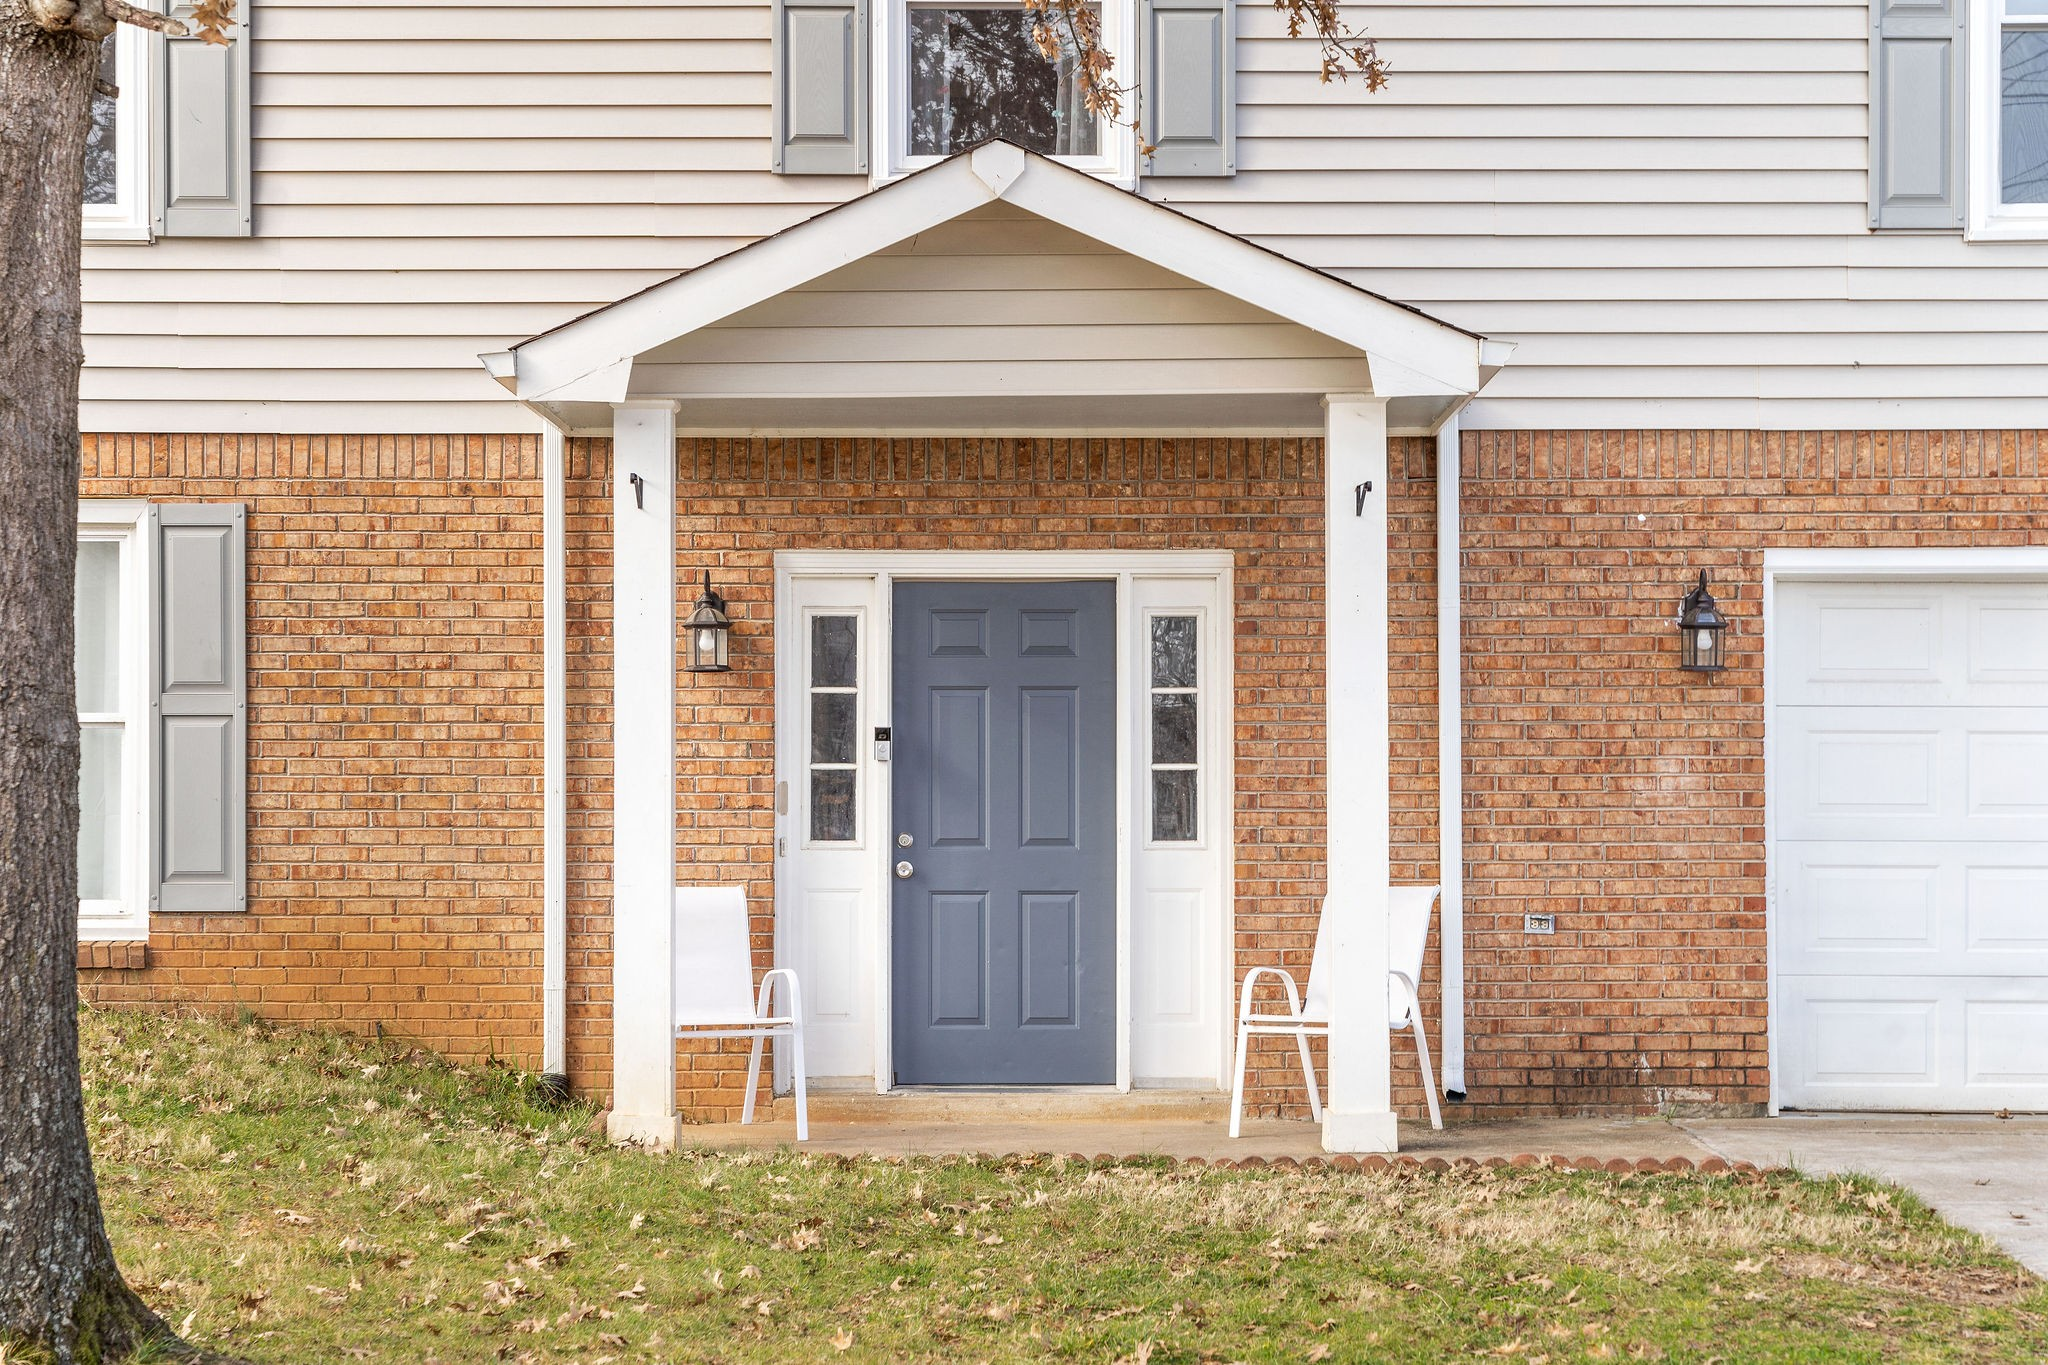 426 Cook Dr Property Photo - Clarksville, TN real estate listing